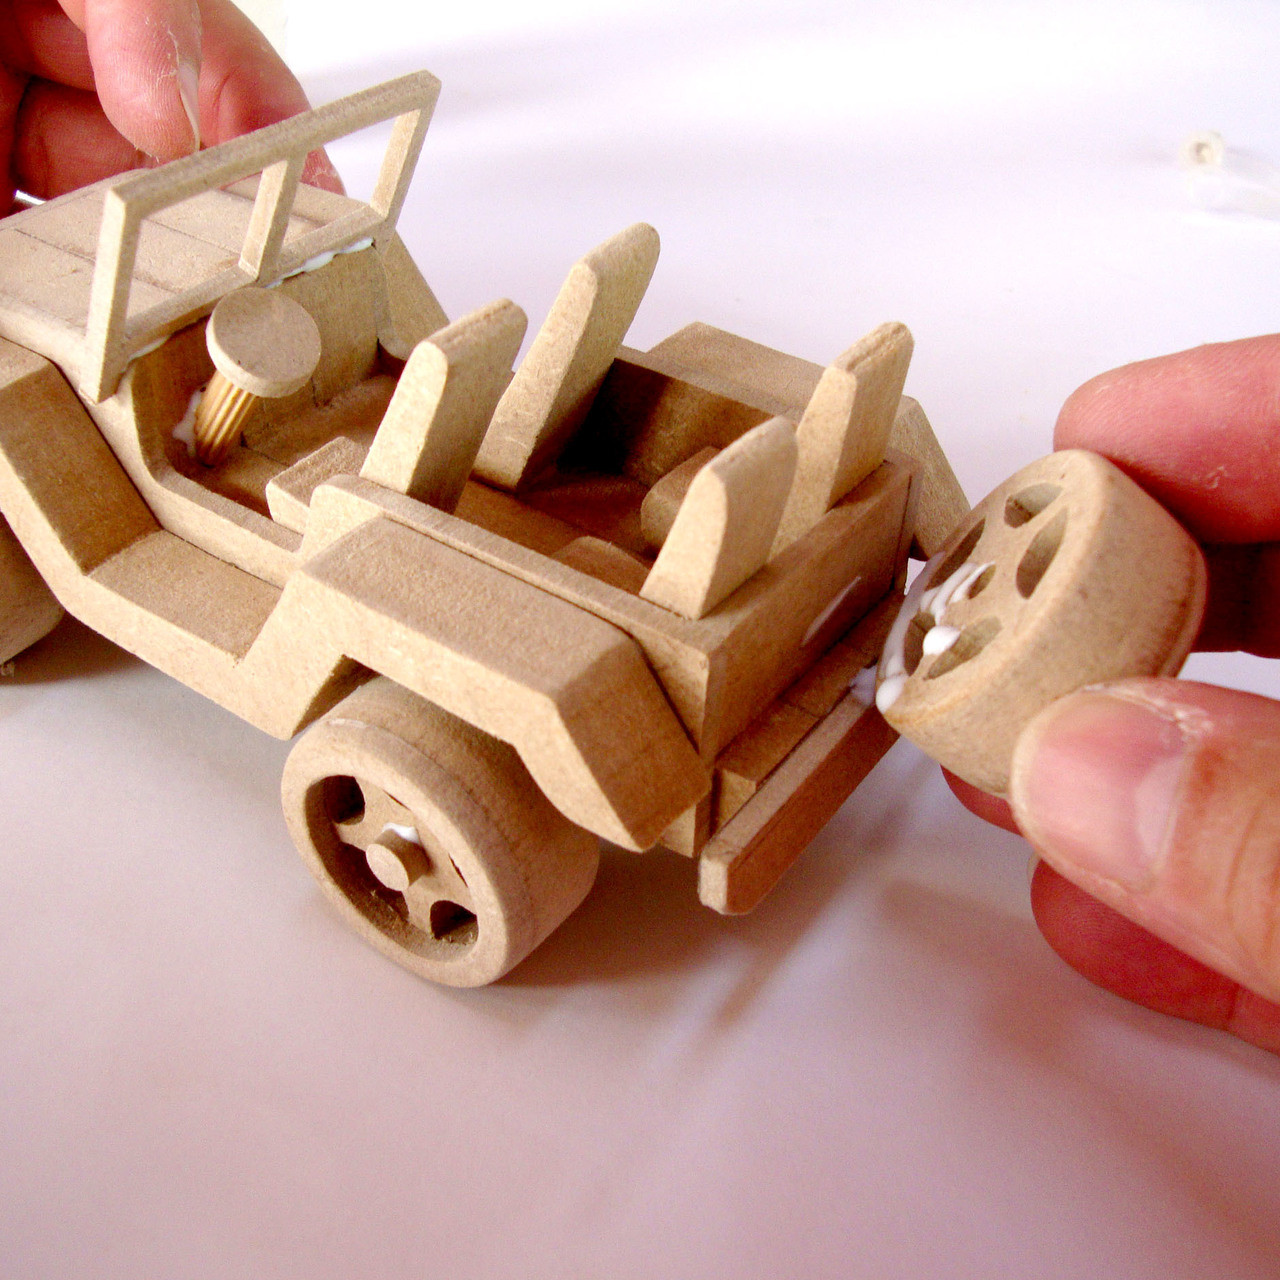 osni's sao paulo jeep wrangler wood toy plans (pdf download)